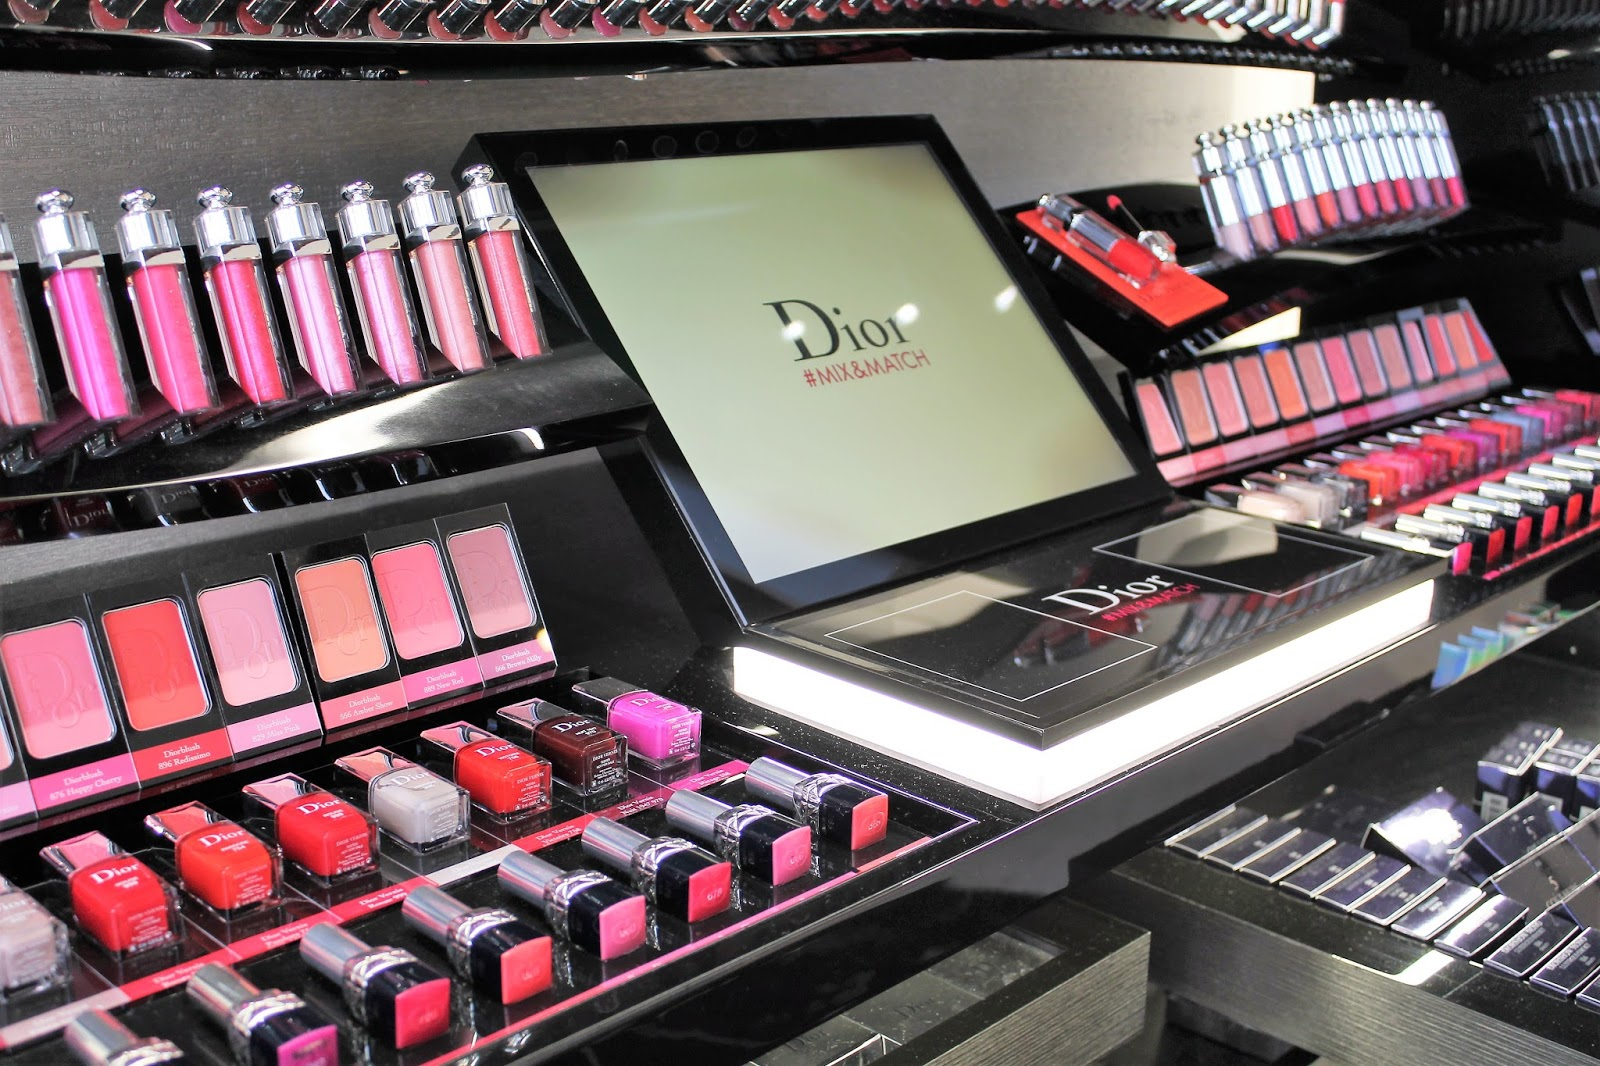 Dior makeup make up maquillage leçon parly 2 cours ambassadeurParly2 boutique nouvelle inauguration corner shop particulière mua muaddict dreamskin cushion rosy glow mascara diorshow overcurl mise en beauté soin le chesnay les gommettes de melo gommette collection privée mix&match vernis nails rose pink